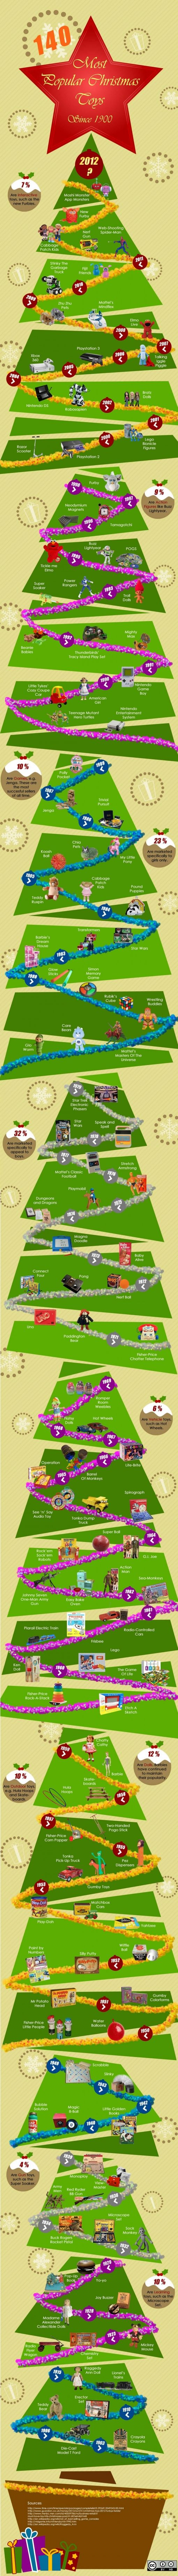 140-most-popular-christmas-toys-since-1900